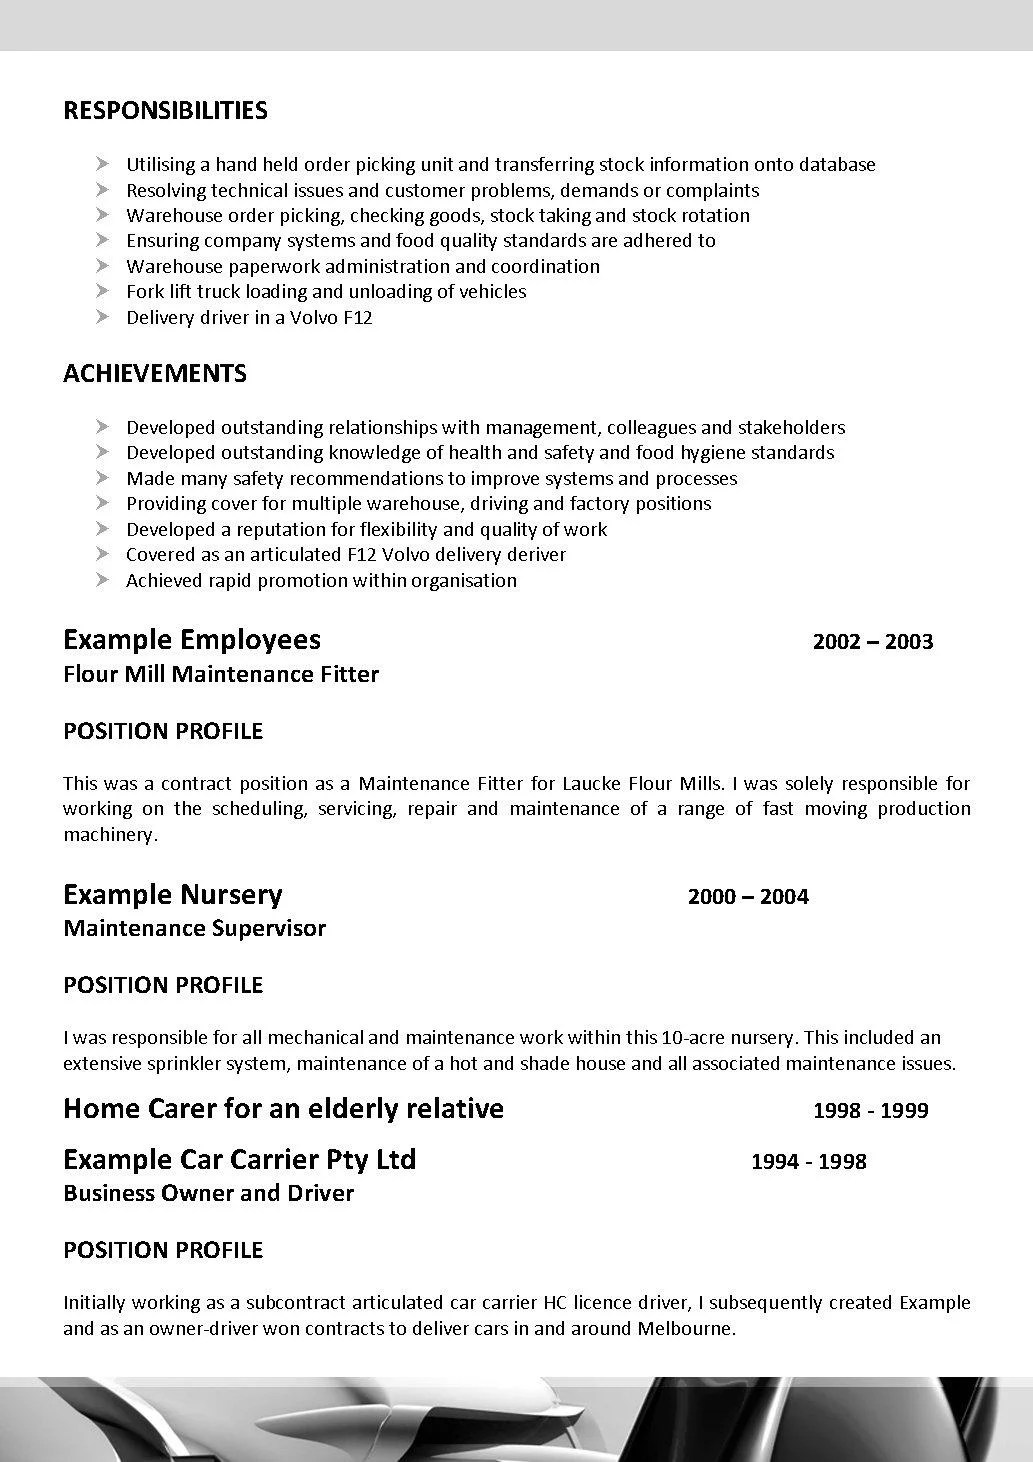 Resume Templates Kelly Services Australia We Can Help With Professional Resume Writing Resume